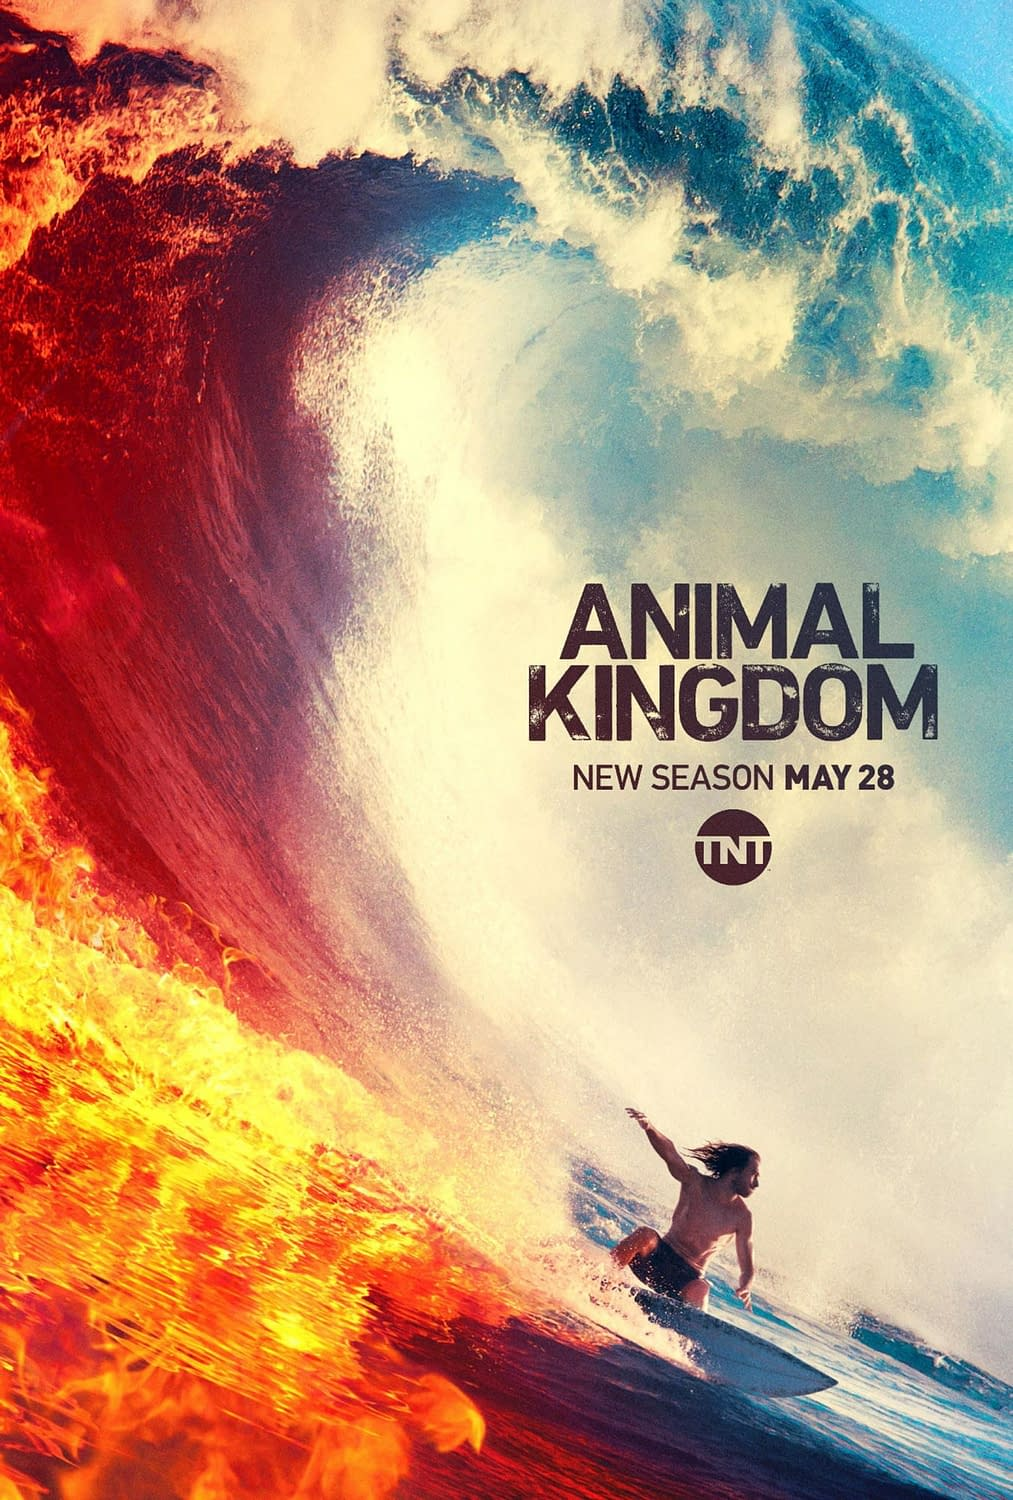 Animal Kingdom season 4 trailer and release date